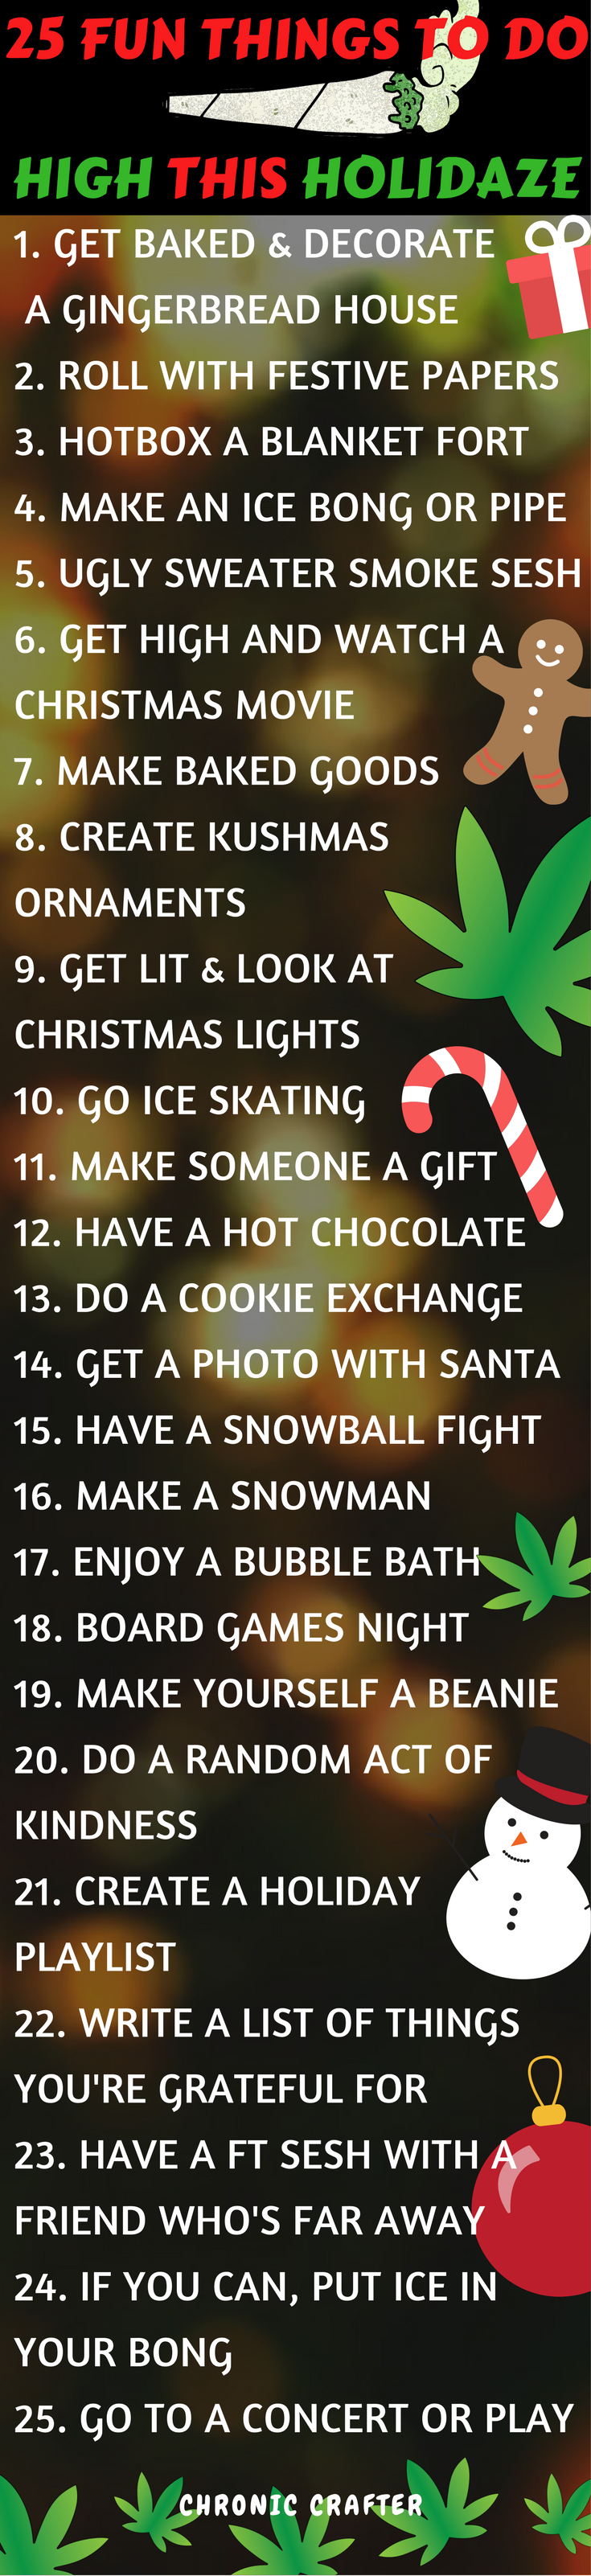 25 Fun Things to Do High this Holidaze Kushmas